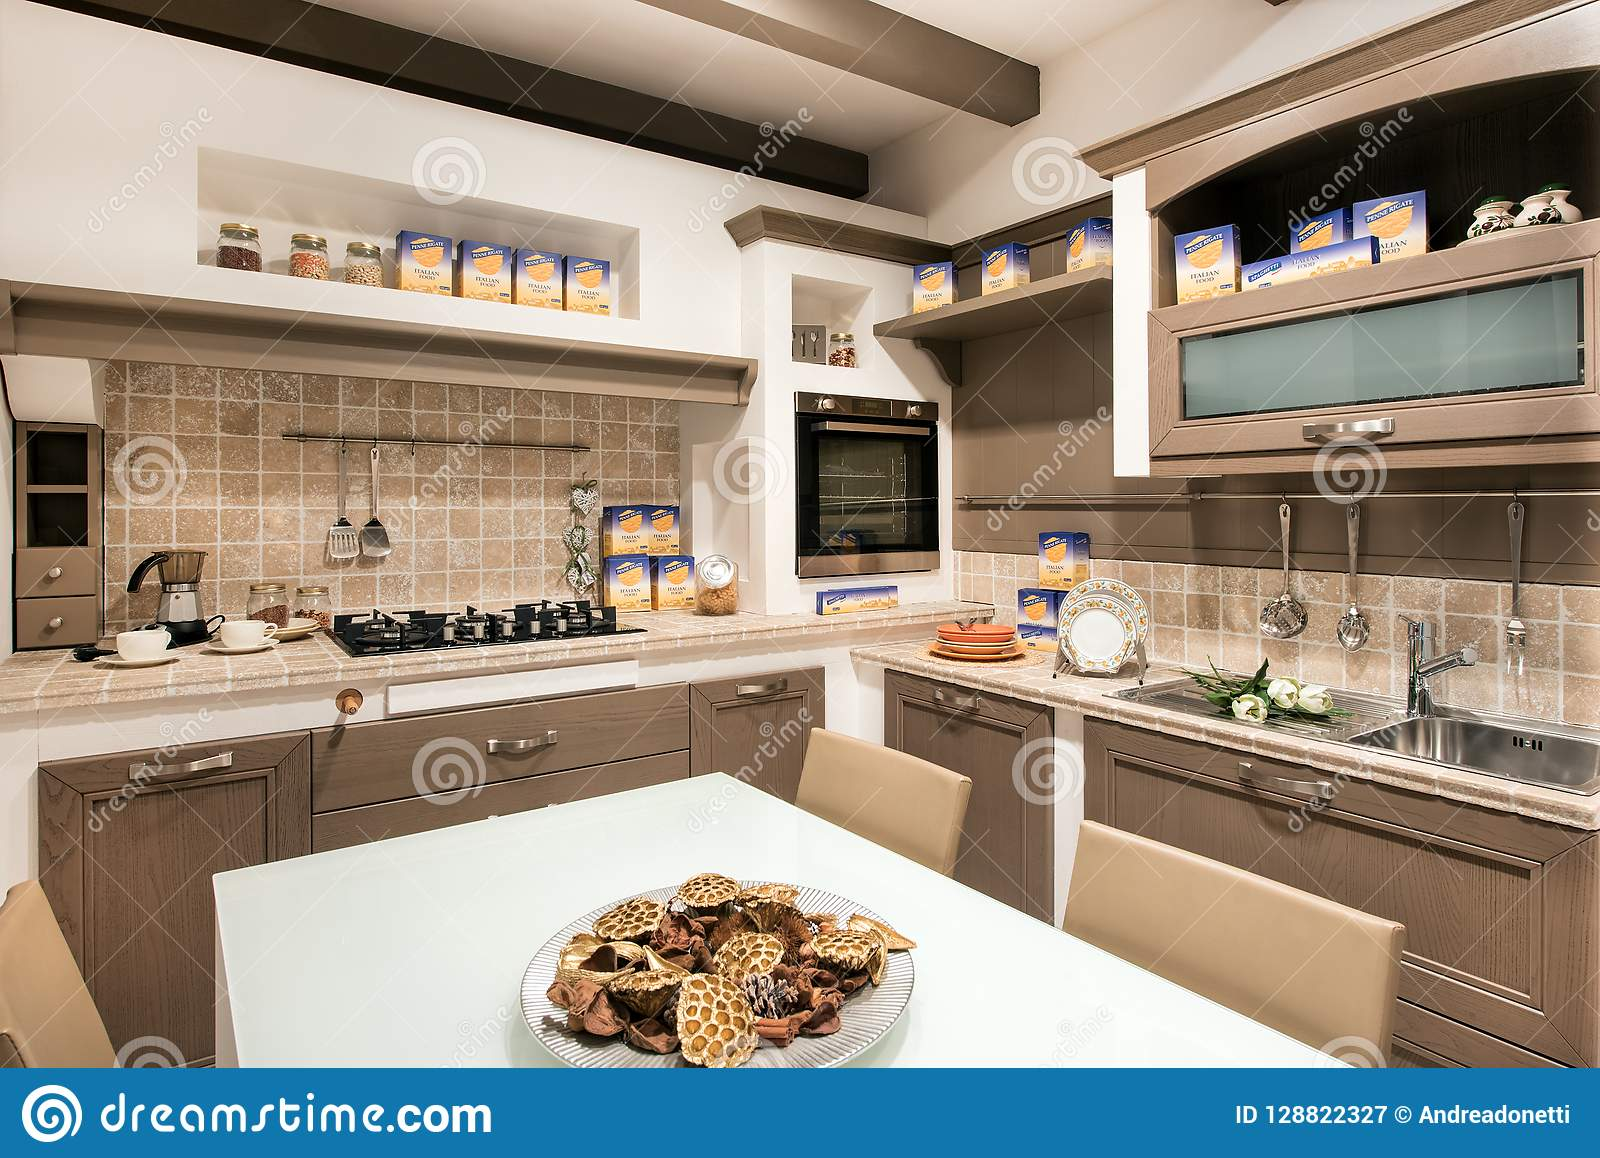 Rustic Or Kitchen Interior With Cooking Supplies Stock Image